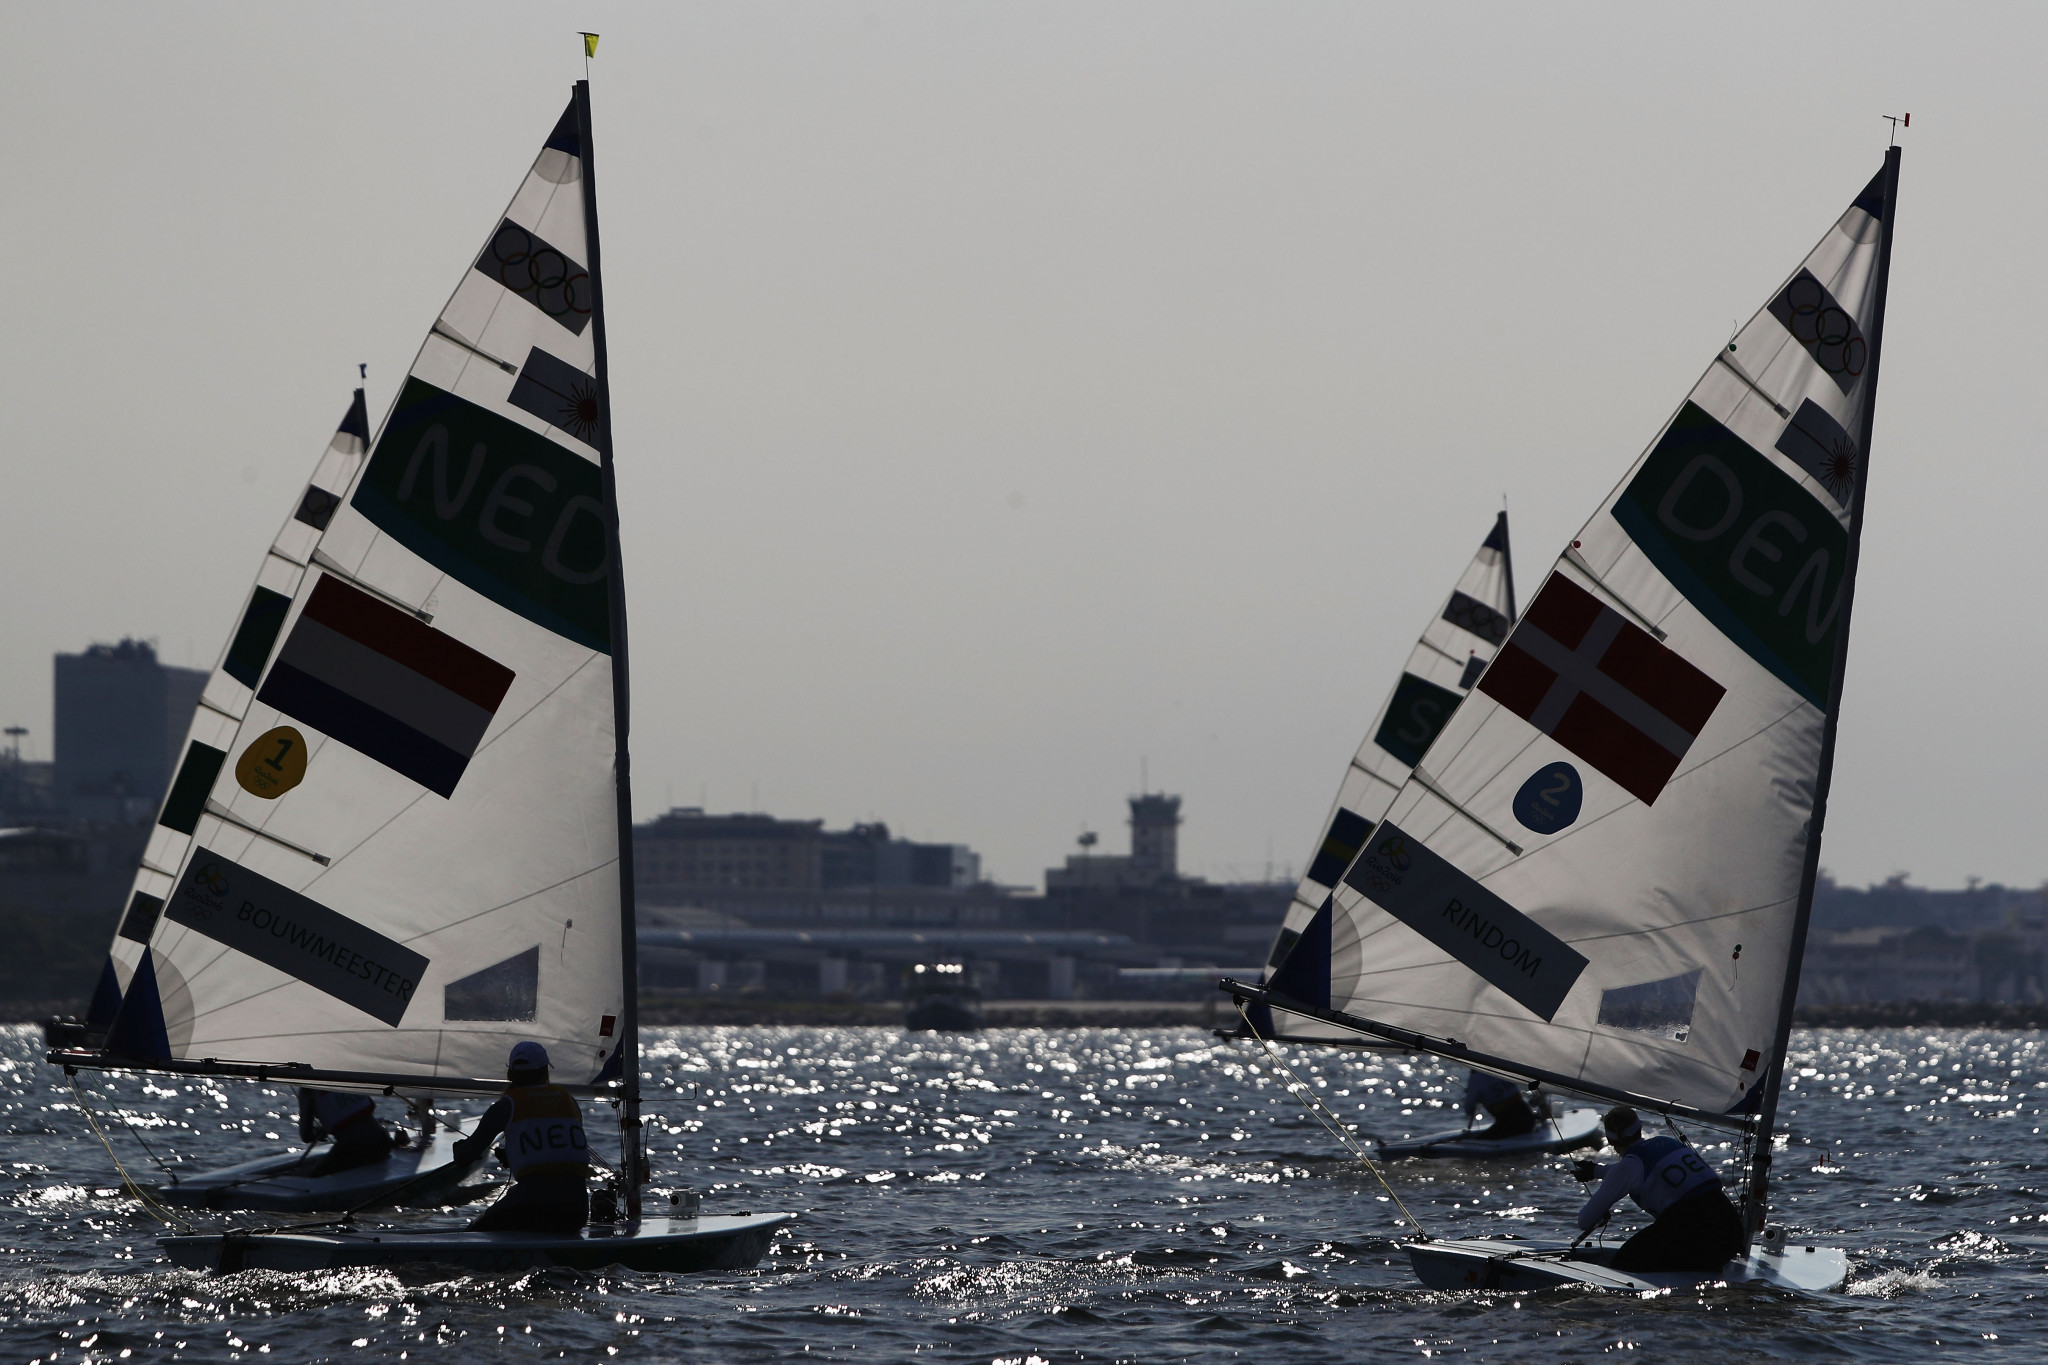 The laser class is set to be replaced as the one-person dinghy equipment for the Olympic competition ©Getty Images